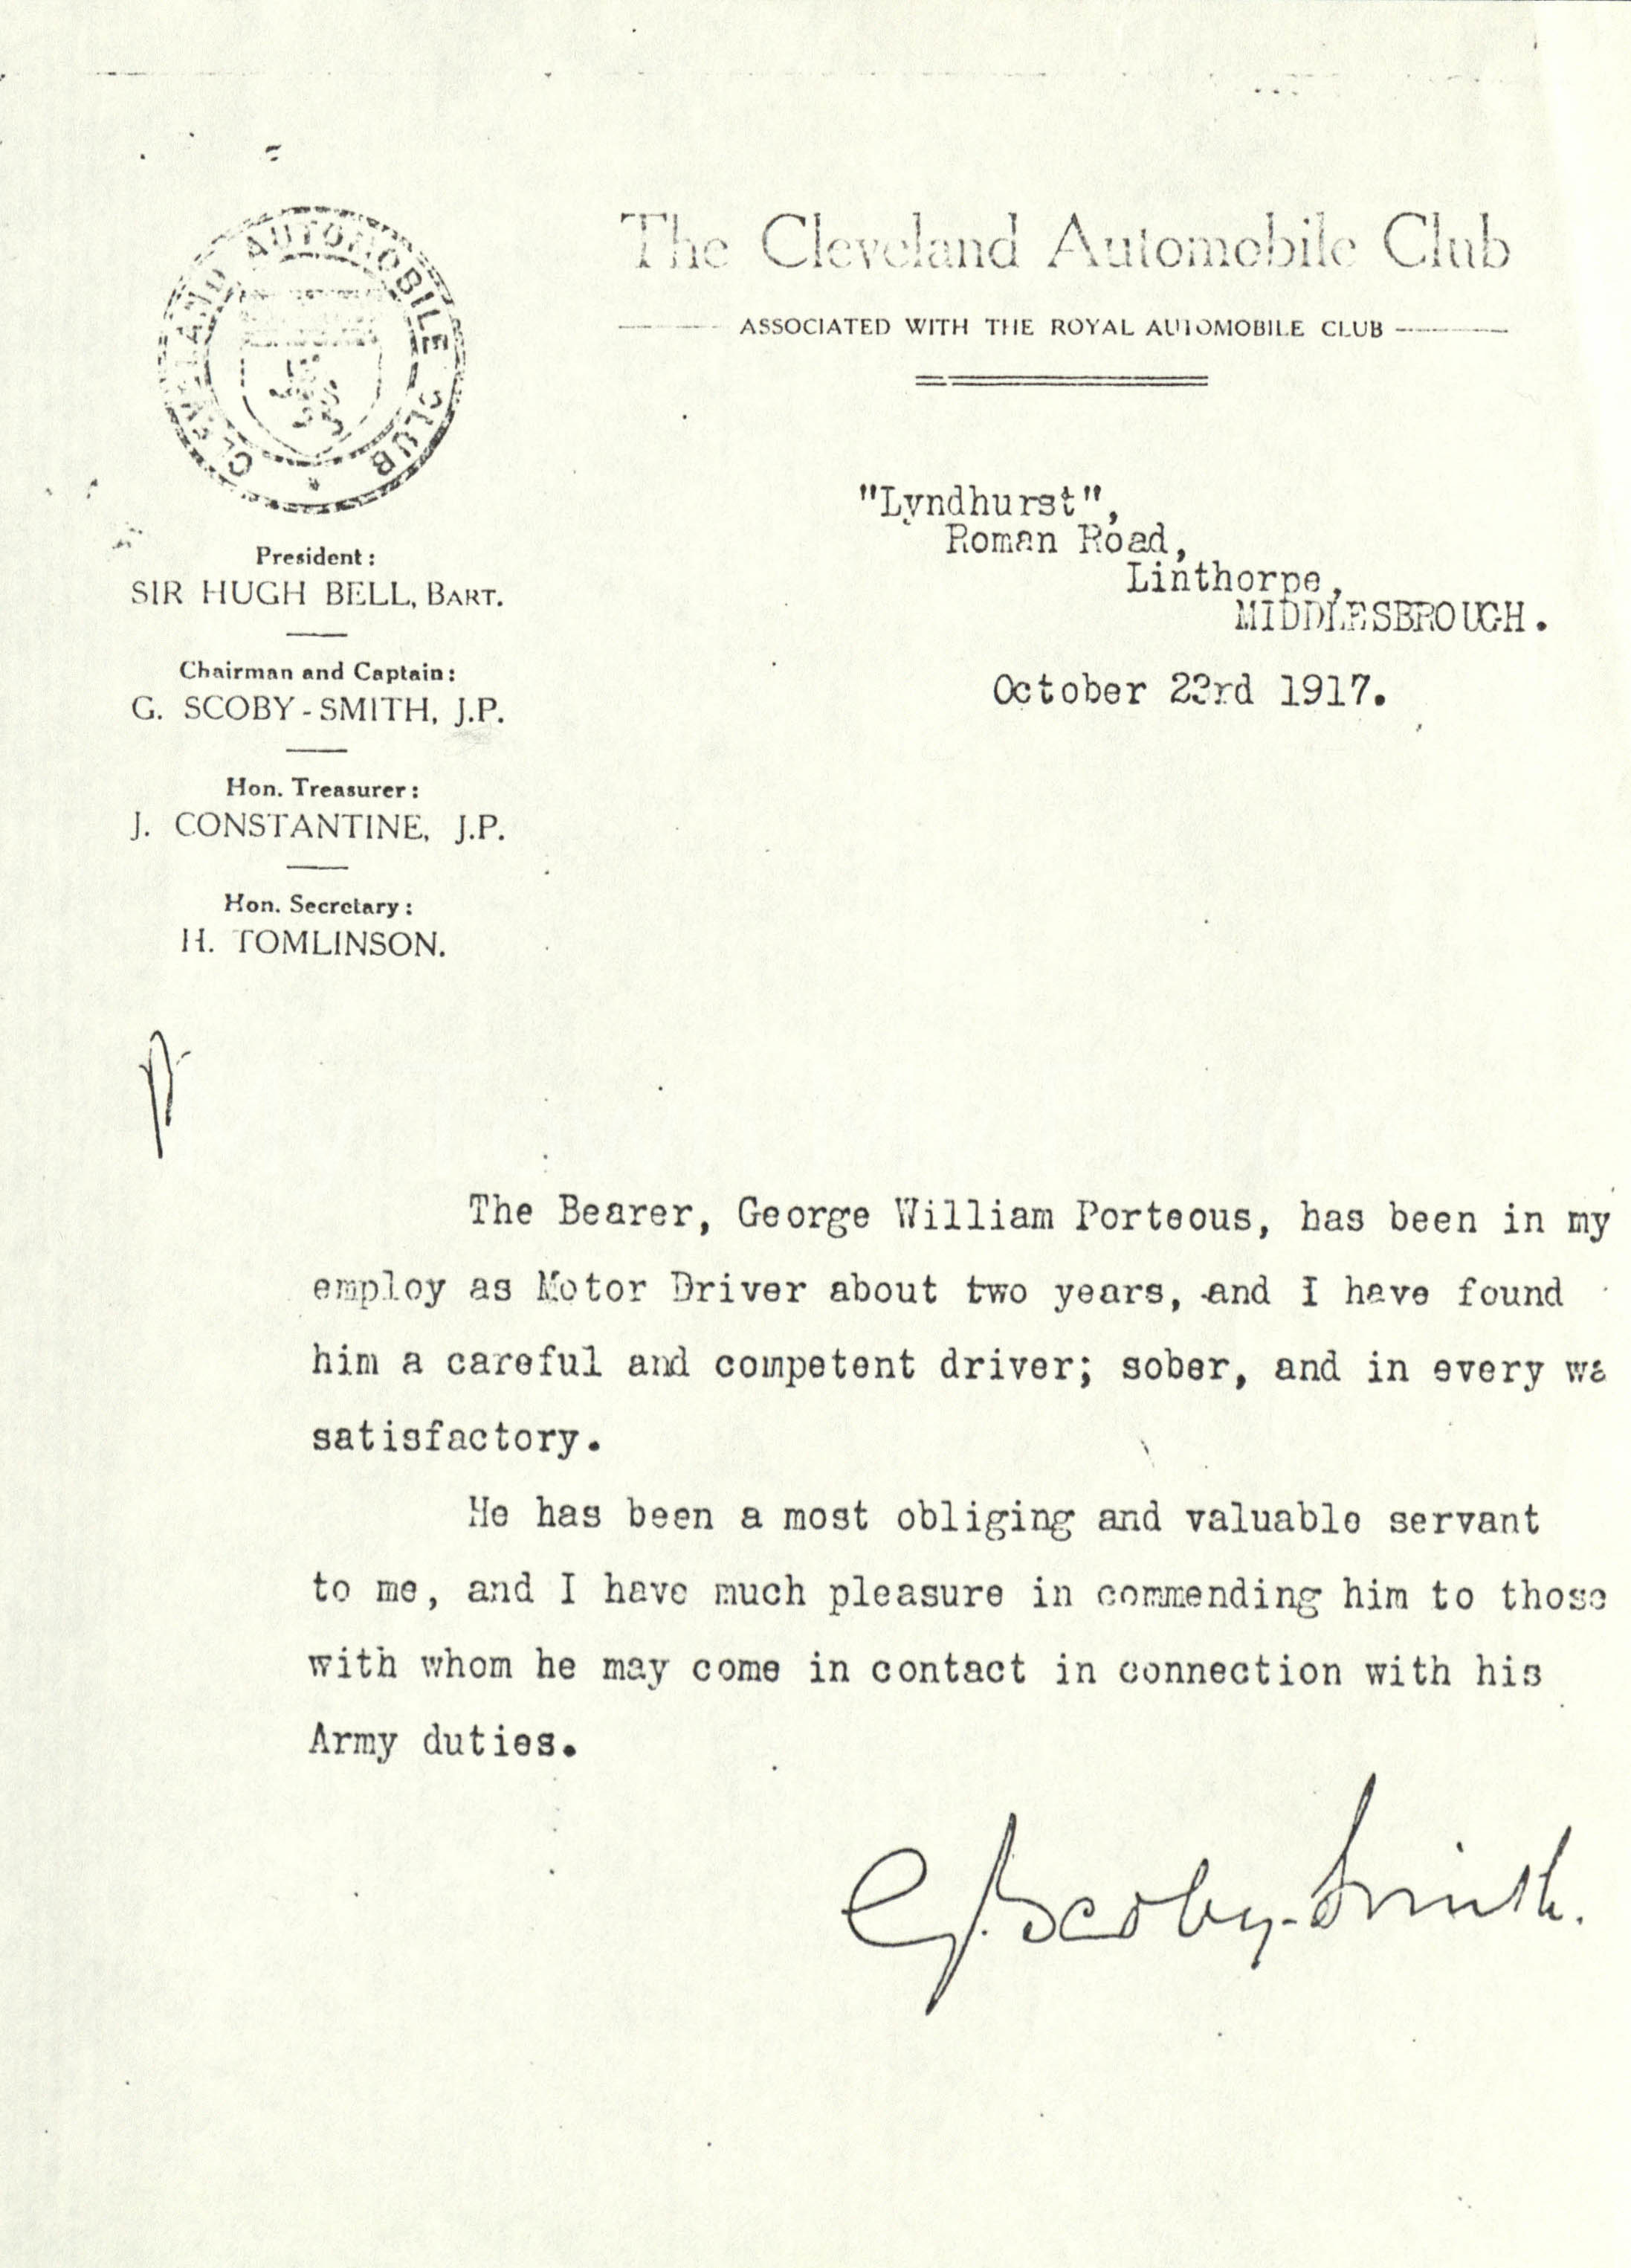 George Scoby Smith, Letter - 23rd October 1917